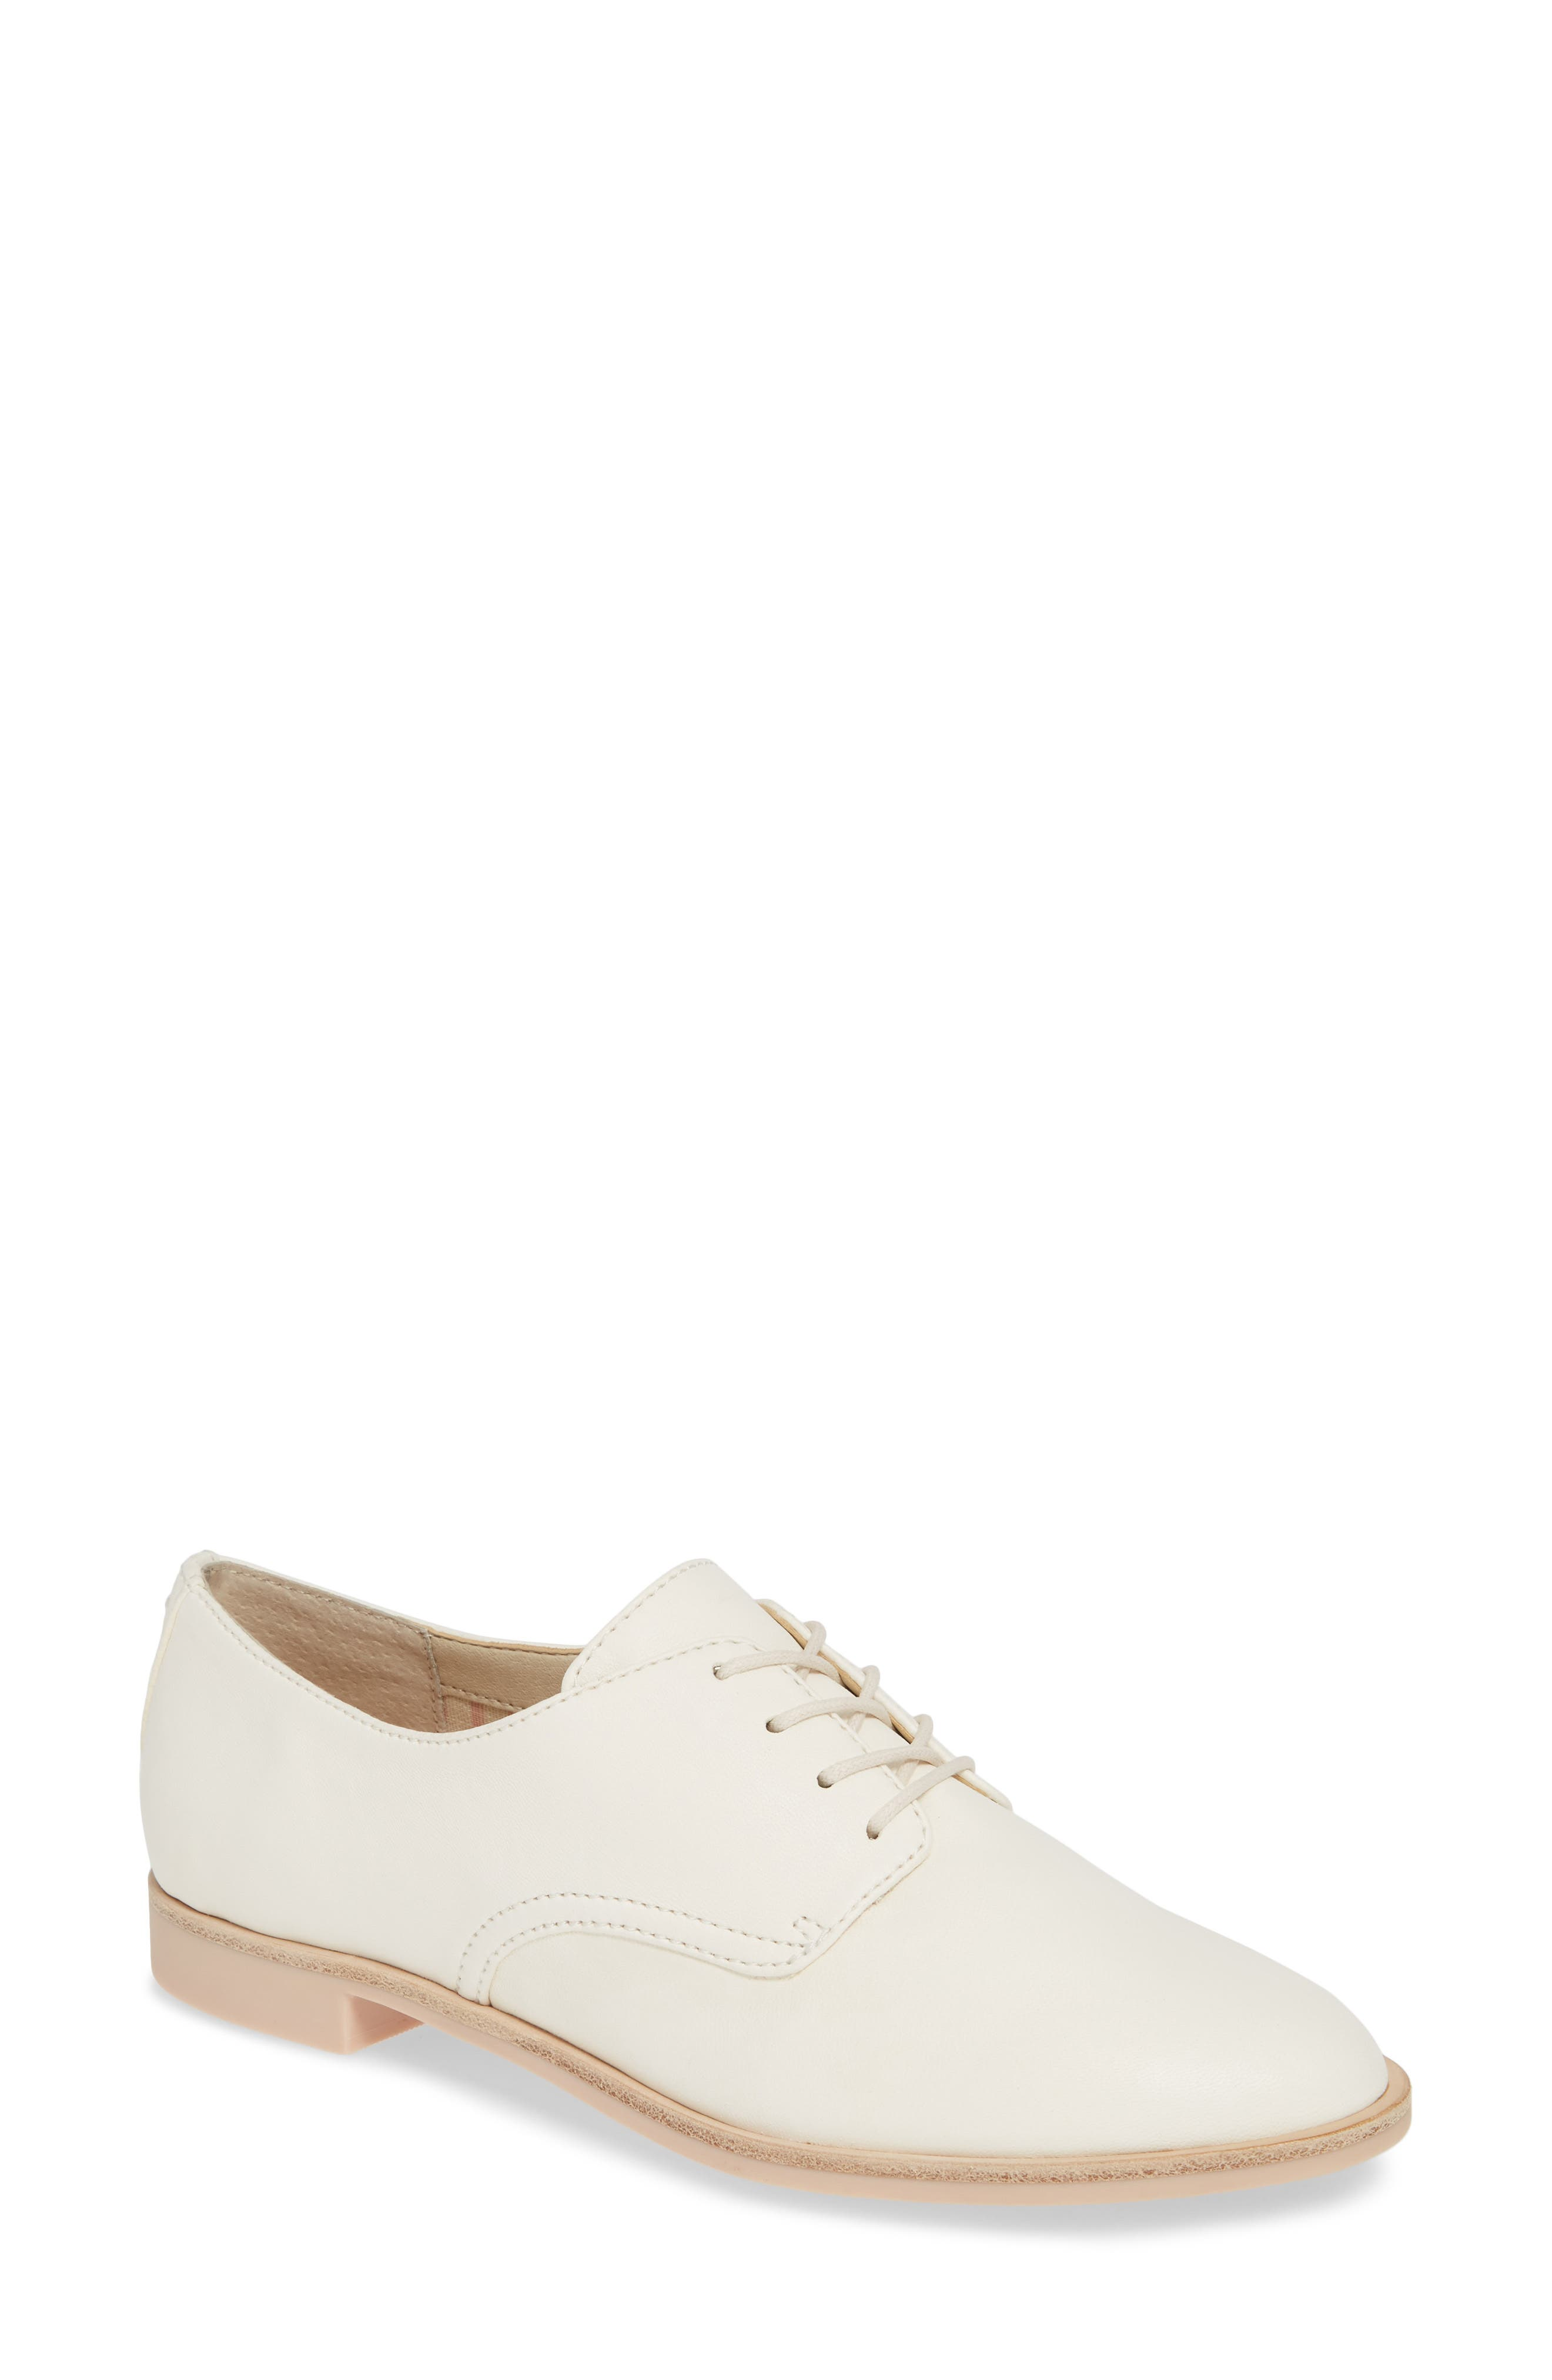 DOLCE VITA Kyle Derby, Main, color, OFF WHITE LEATHER